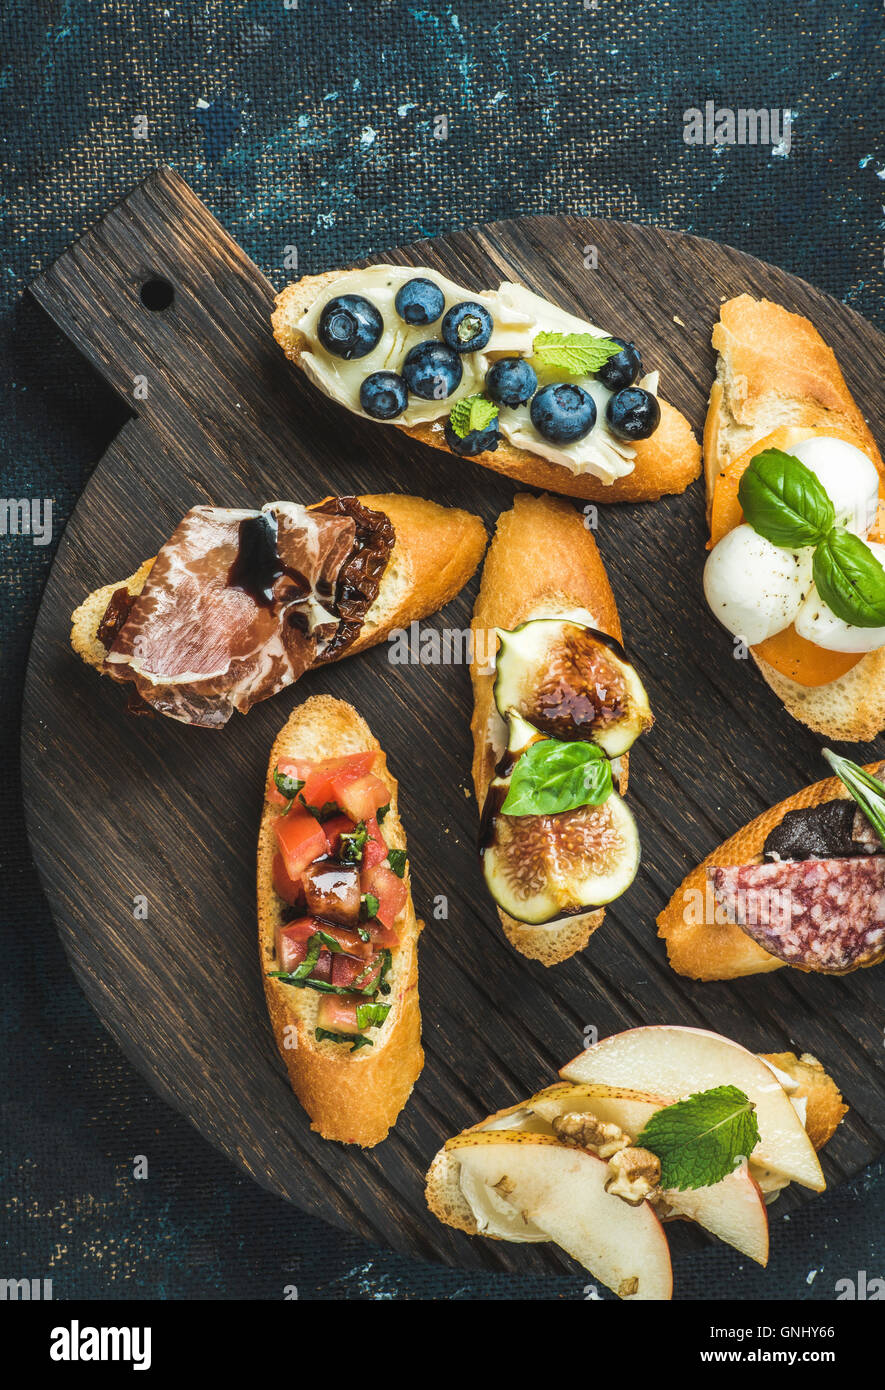 Italian crostini with various toppings on round wooden serving board over black plywood background, top view - Stock Image